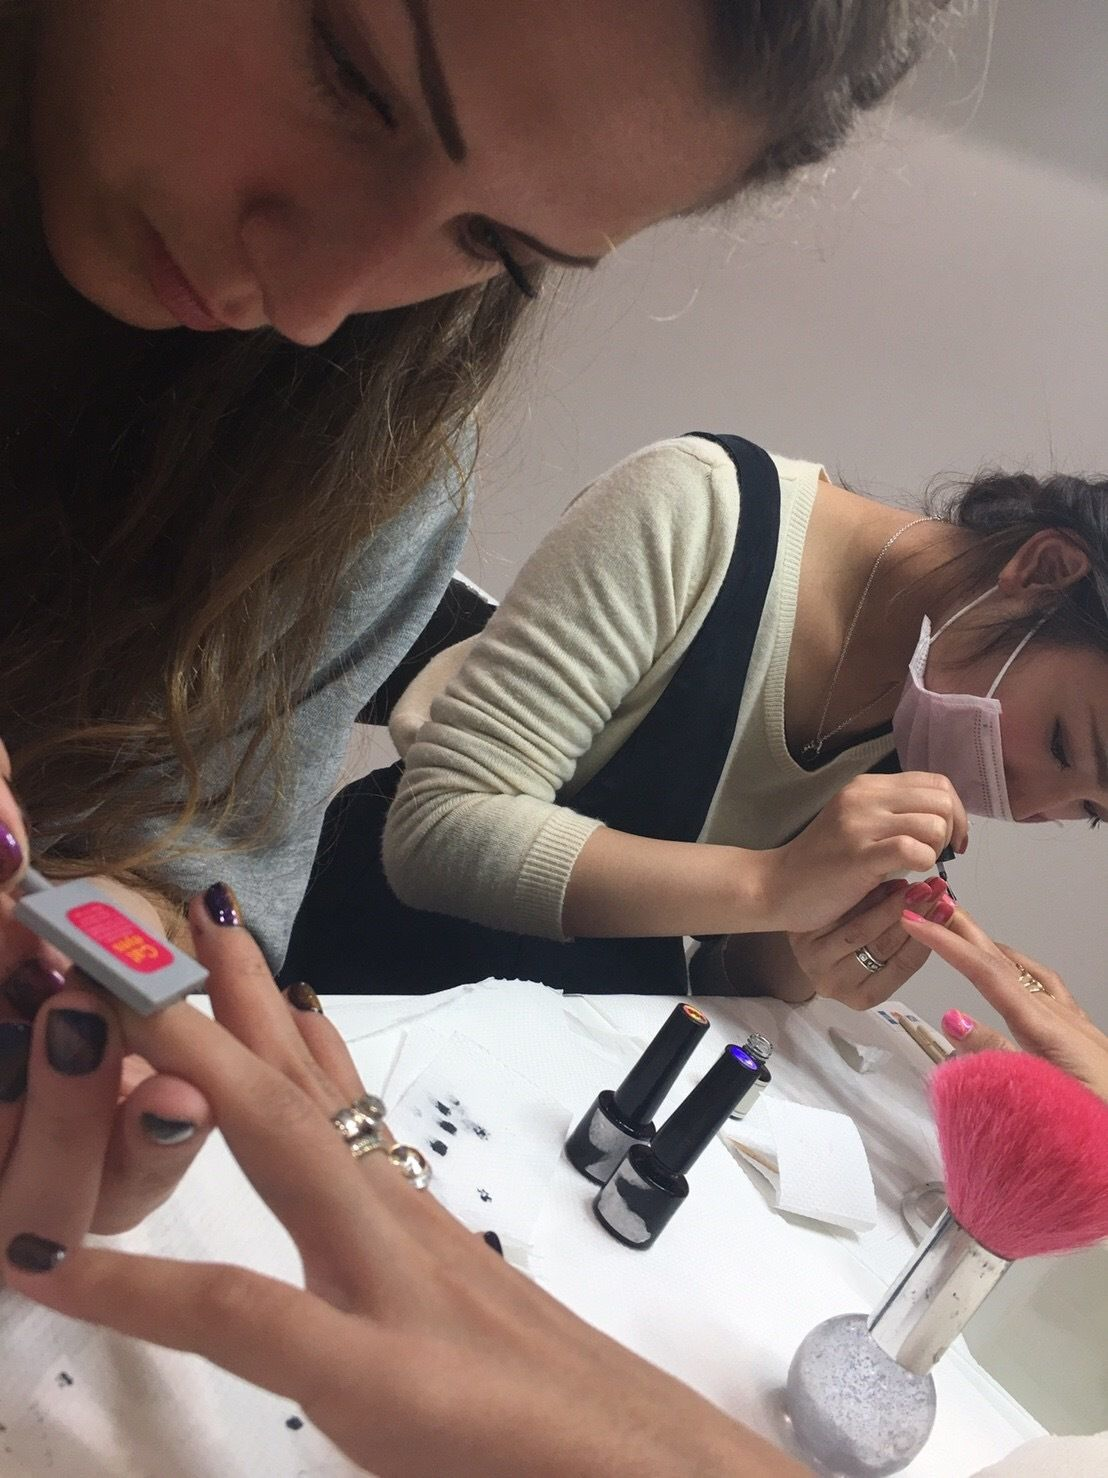 Nail Art Course In Singapore Do You Want To Become A Nail Technician